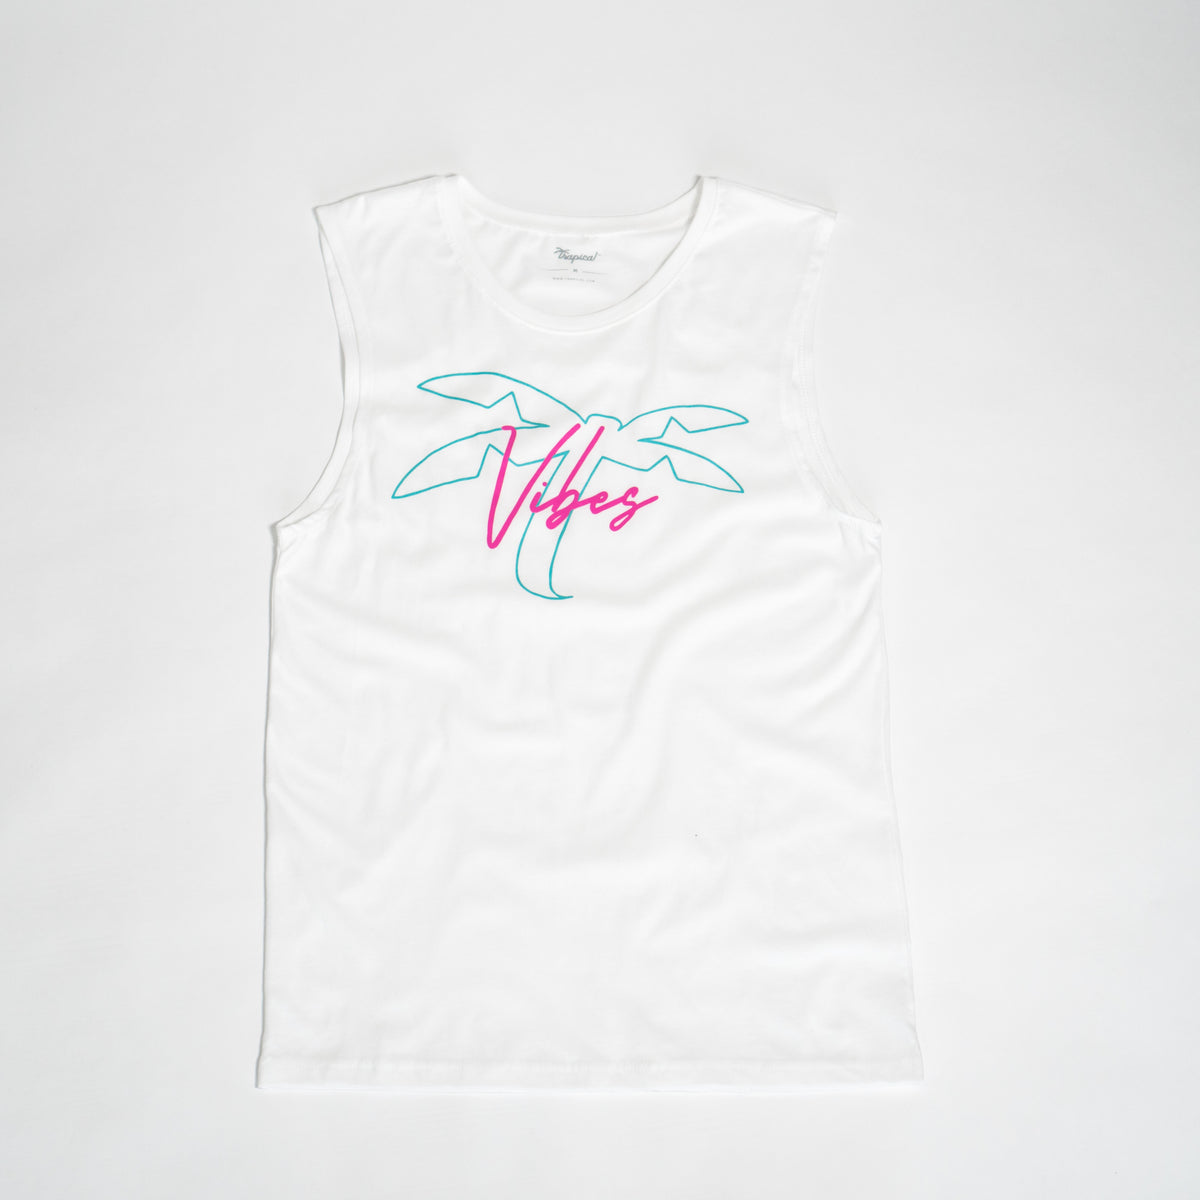 Men's T Vibes white - Trapical